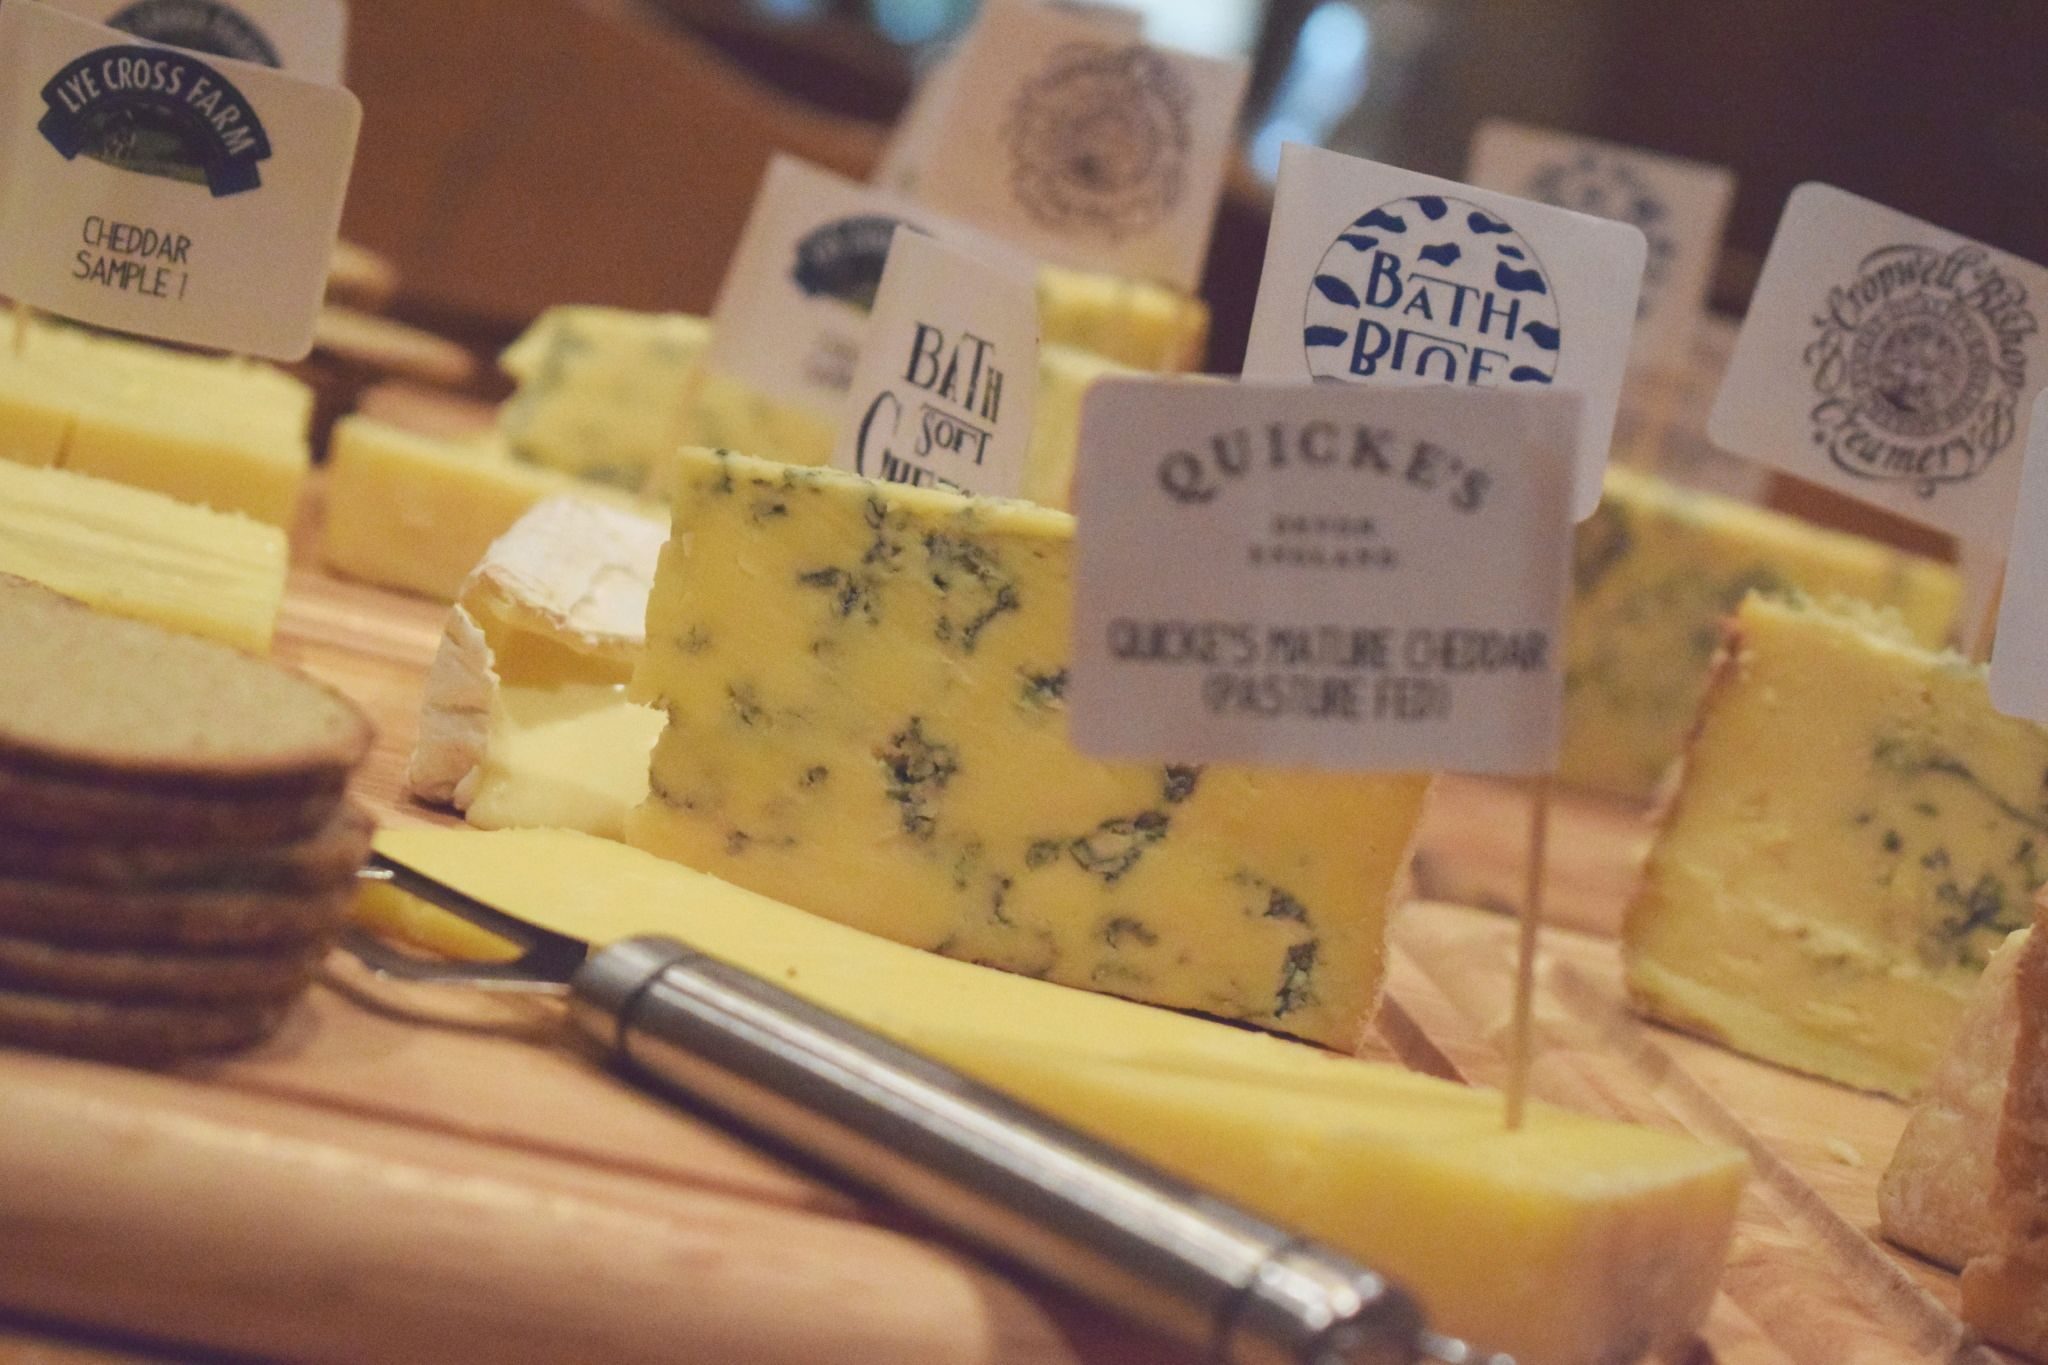 'An important market': UK shows off best of British cheese at Hong Kong event